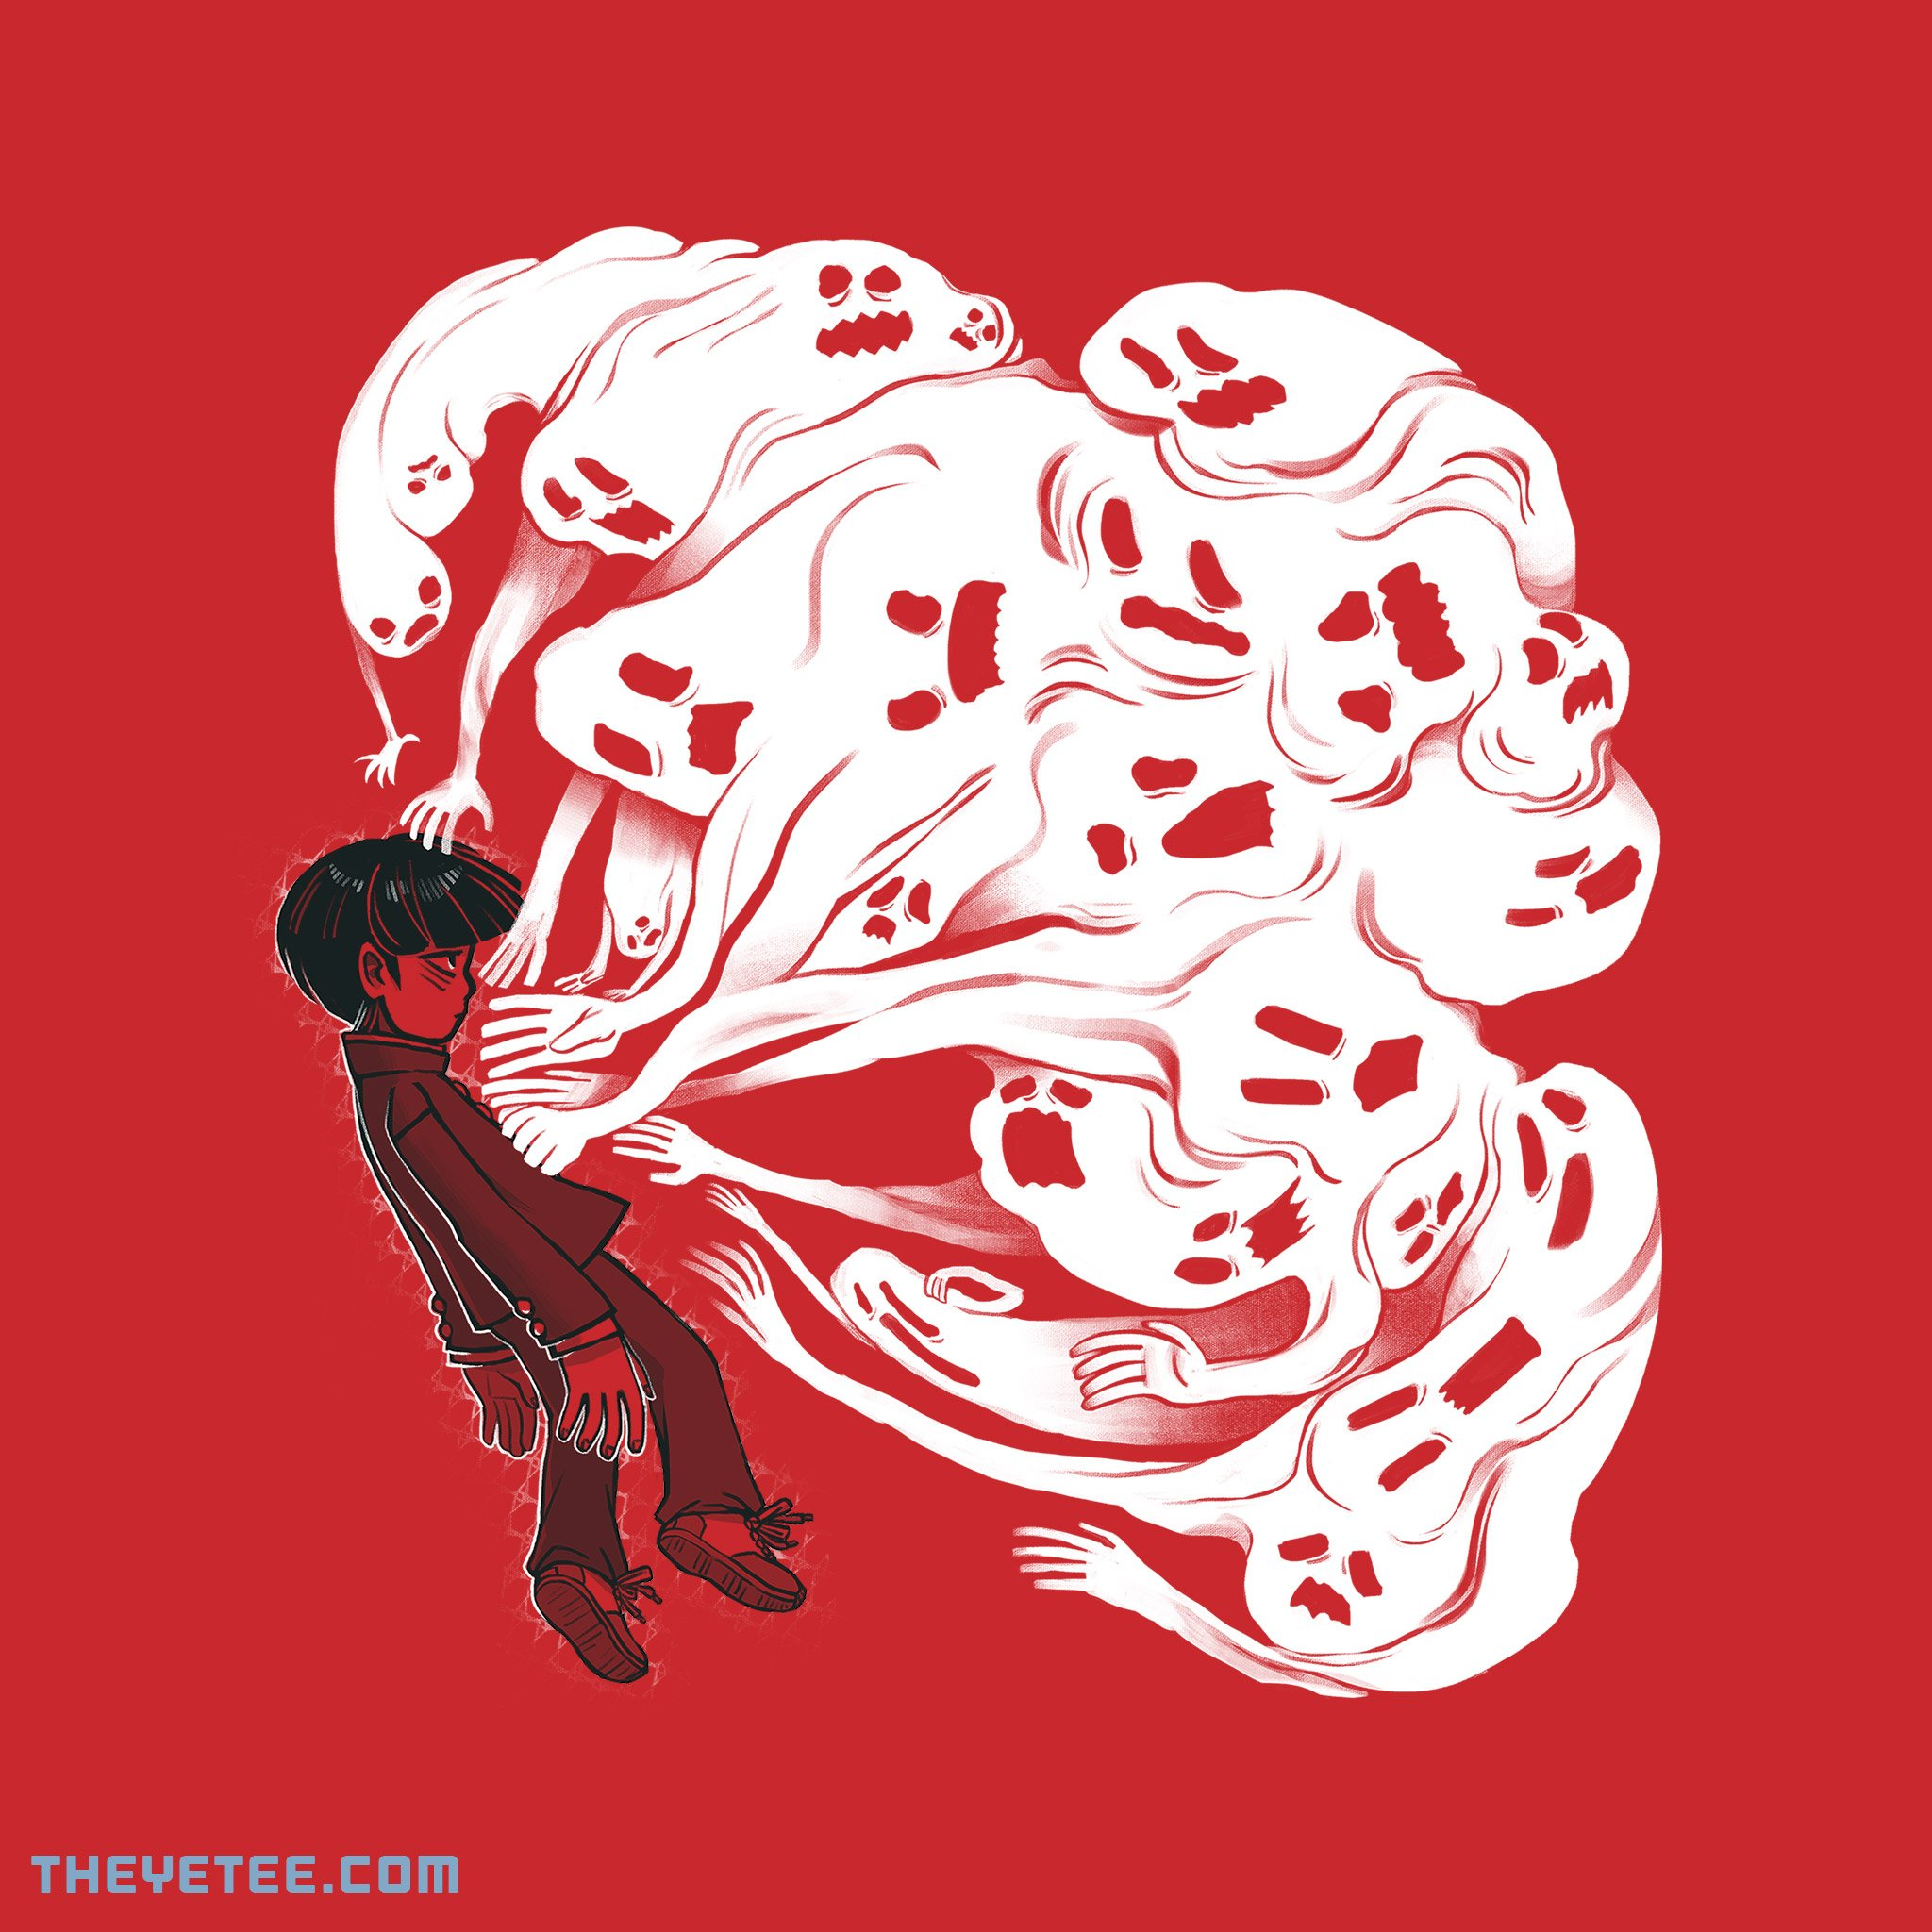 The Yetee: An Ordinary 8th Grader